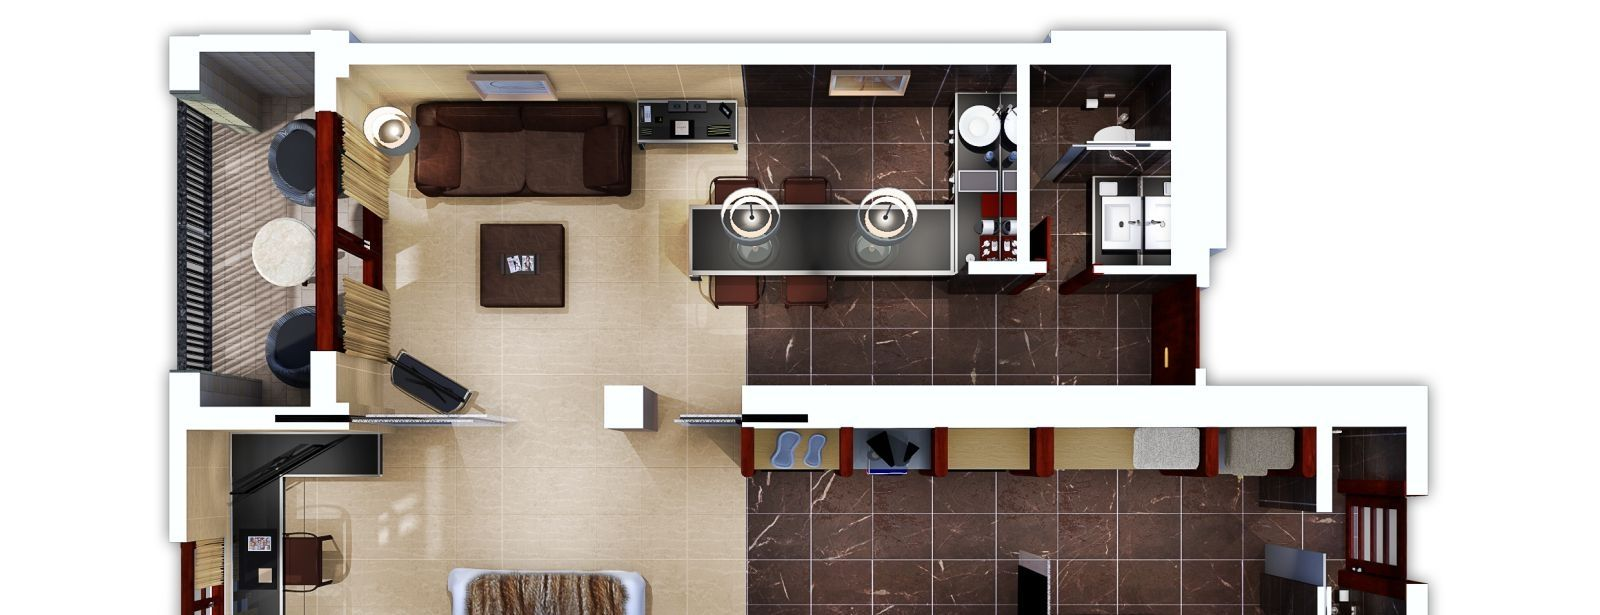 3D Floorplan of the LOEWE Suite